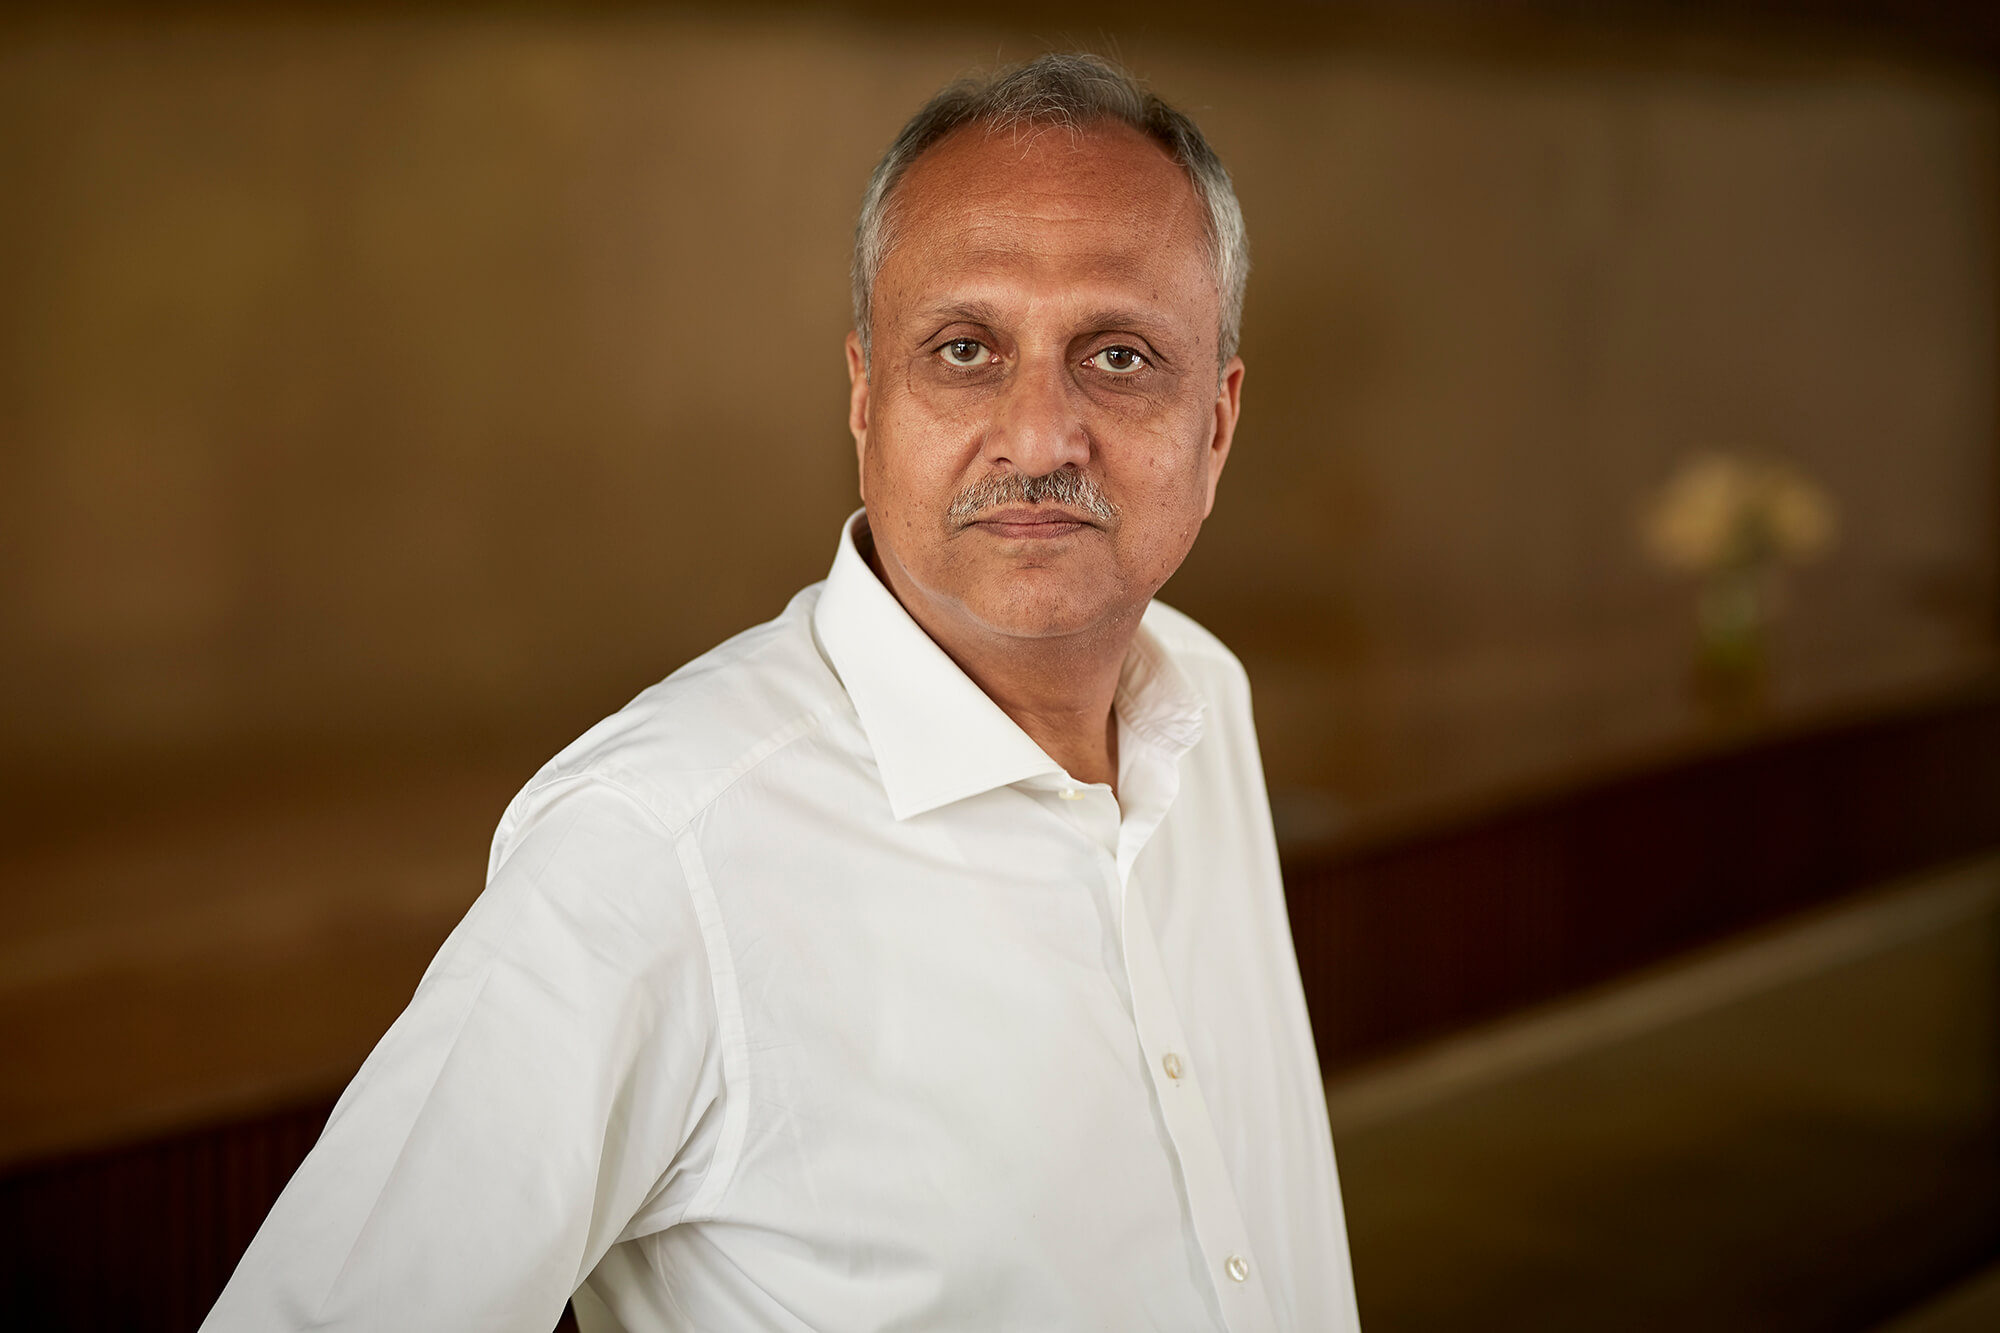 Snehdeep Aggarwal - Founder and Chairman